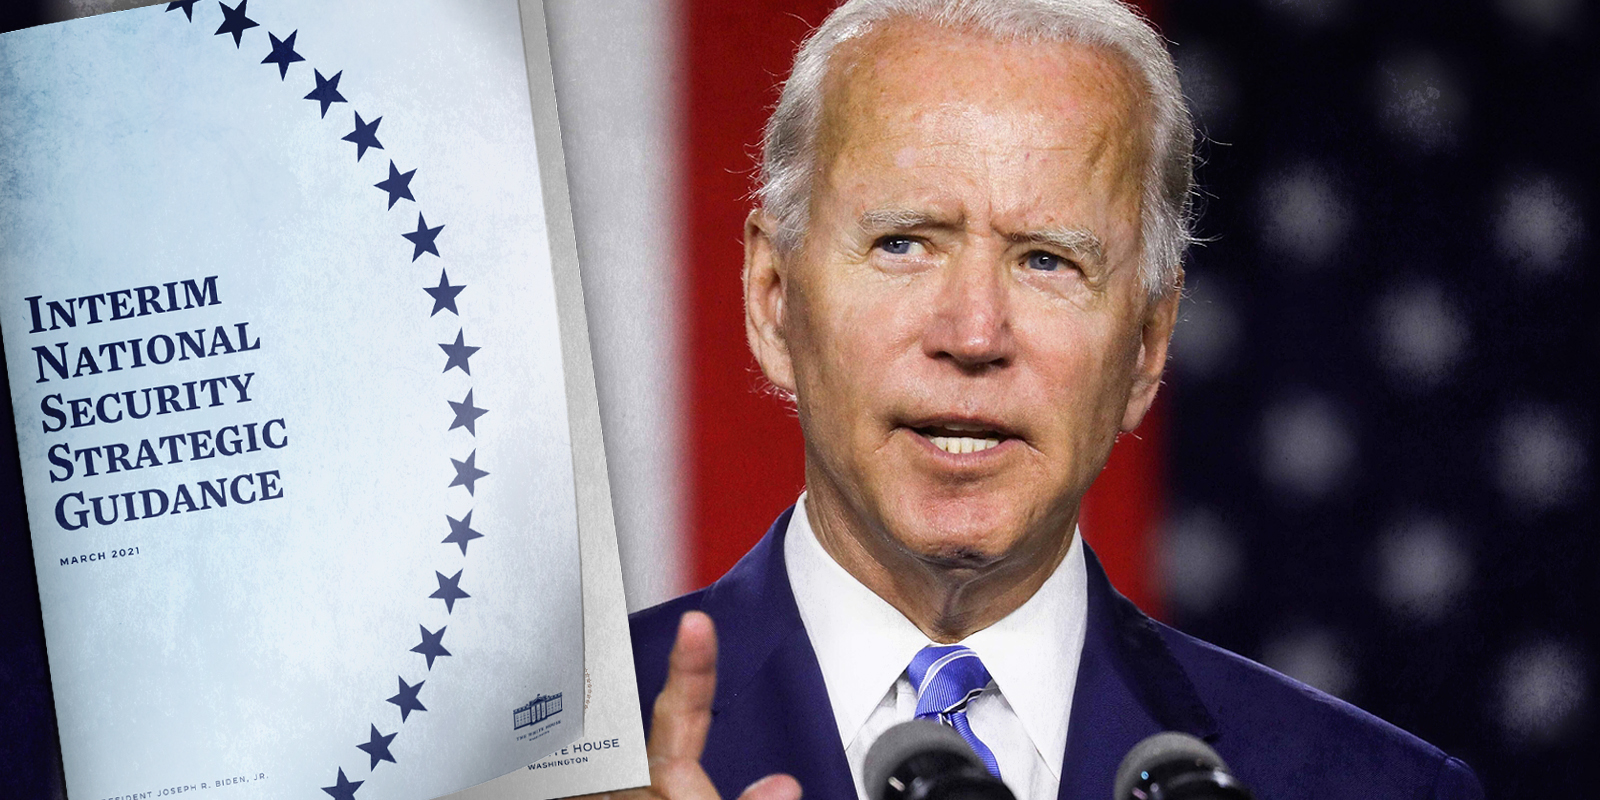 President Joe Biden and his national security guidance document.